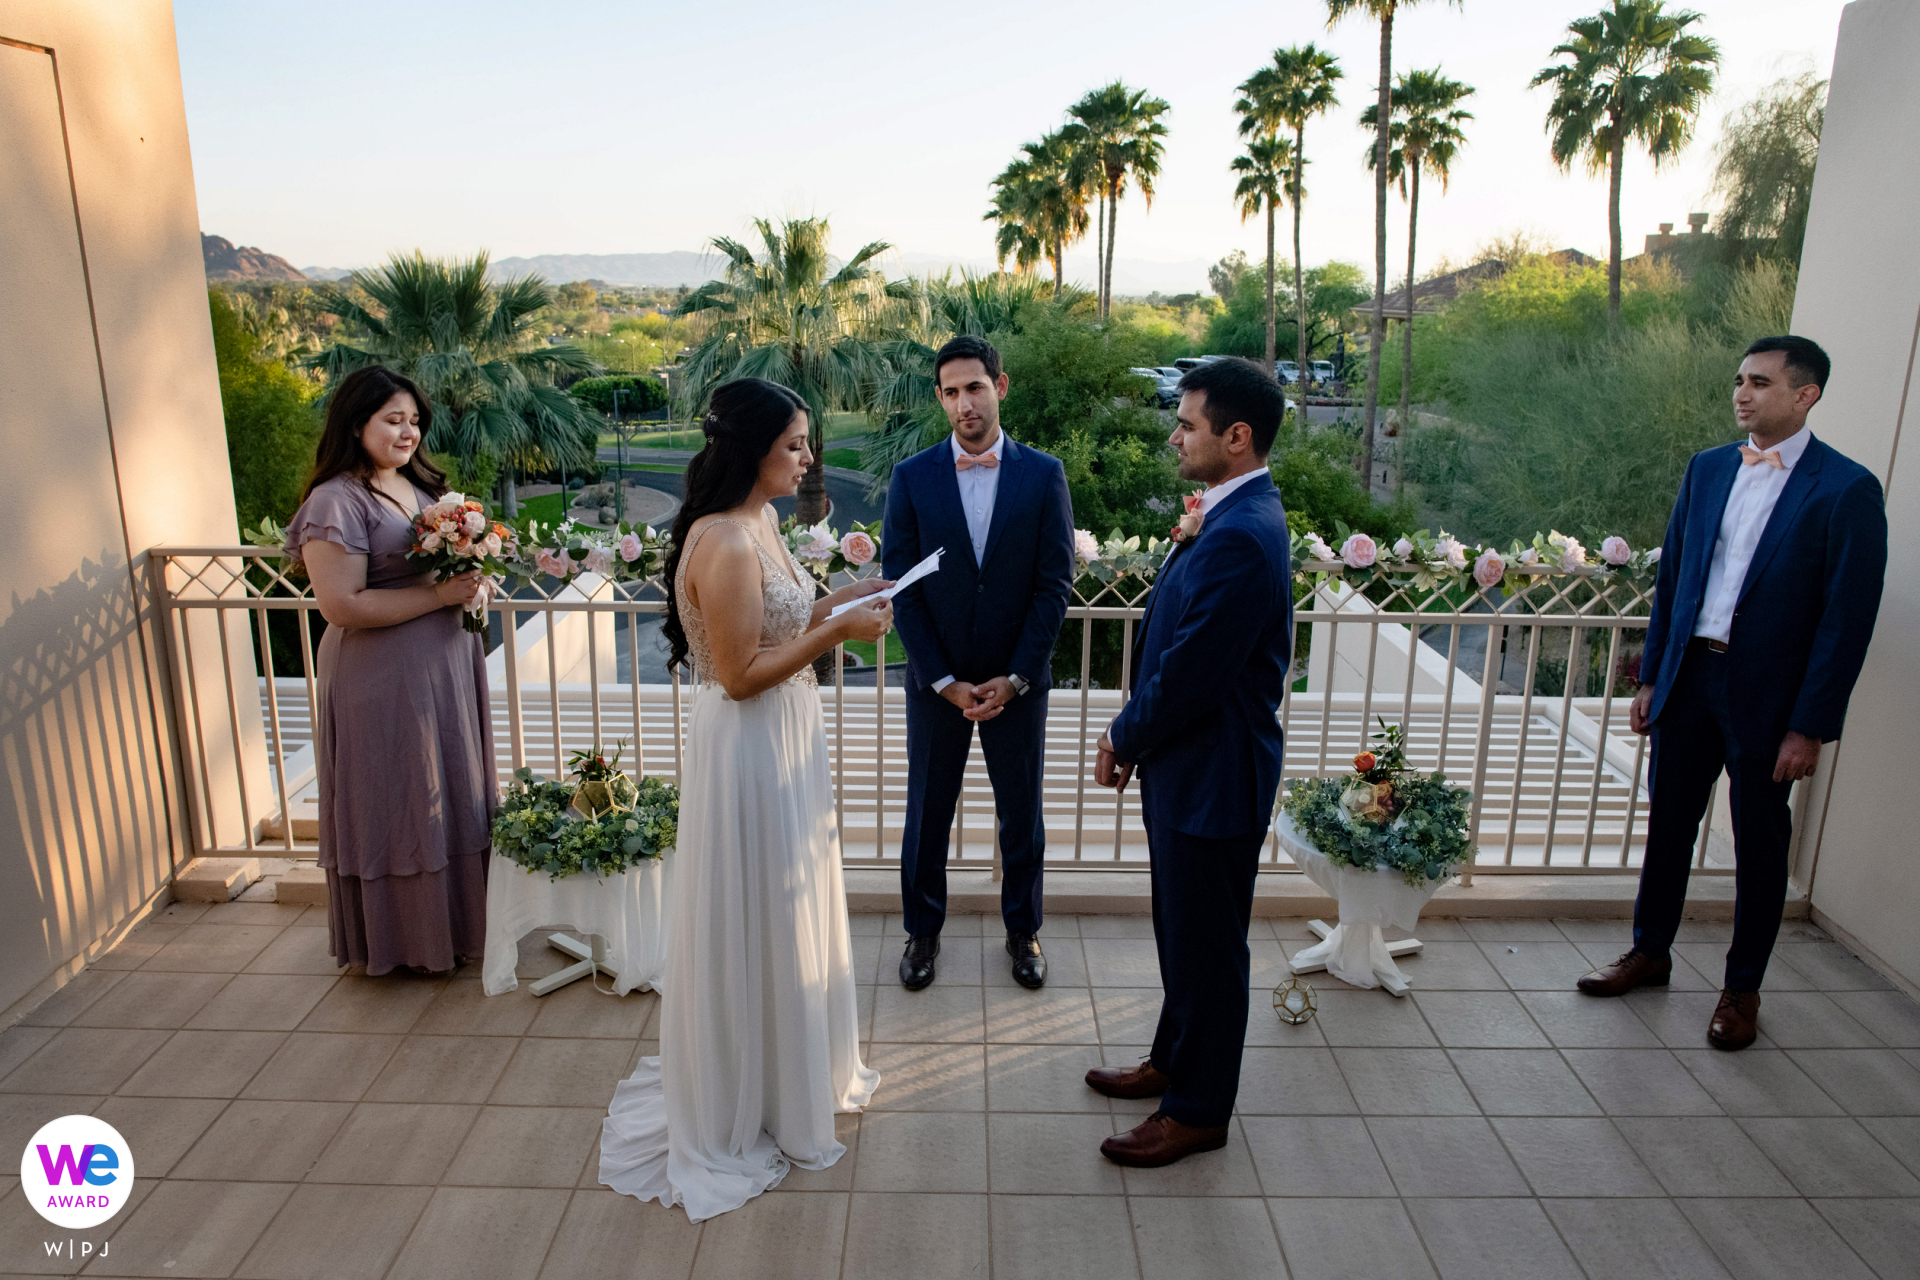 Luxury Wedding Photos from a Scottsdale Venue | private balcony ceremony at the Phoenician Resort in Arizona